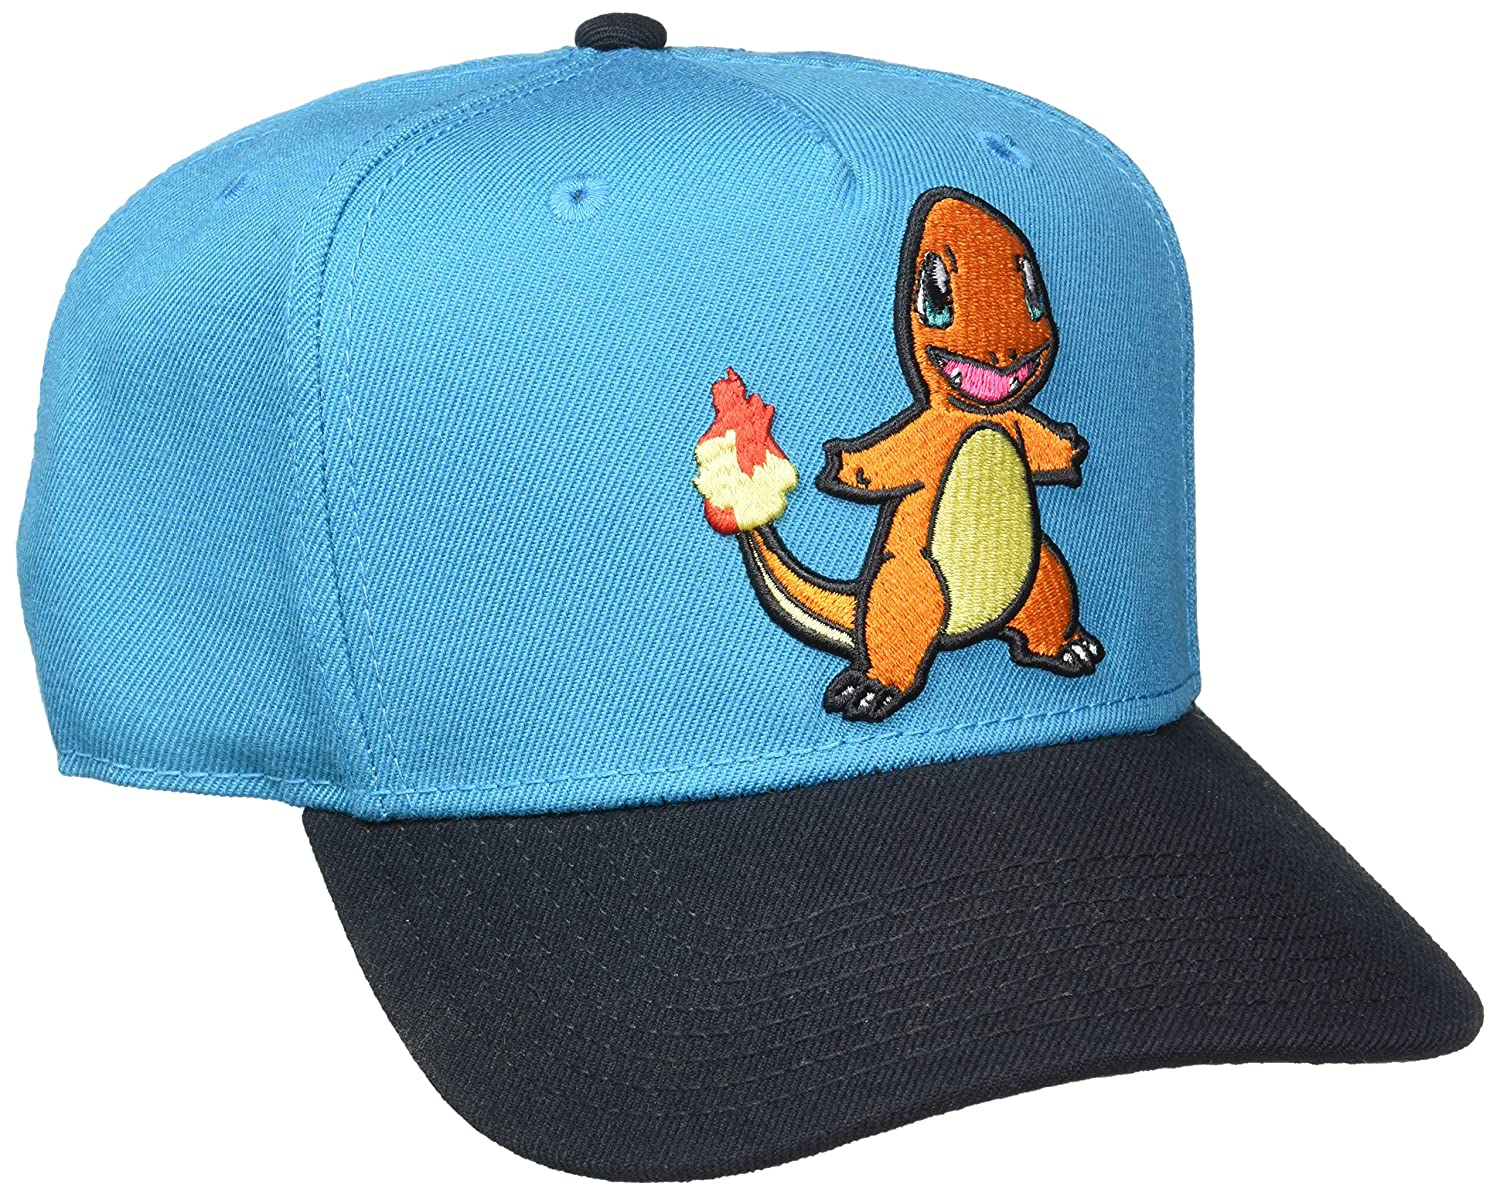 BIOWORLD Pokemon Charmander Embroidered Blue Snapback Cap Hat 887439997527